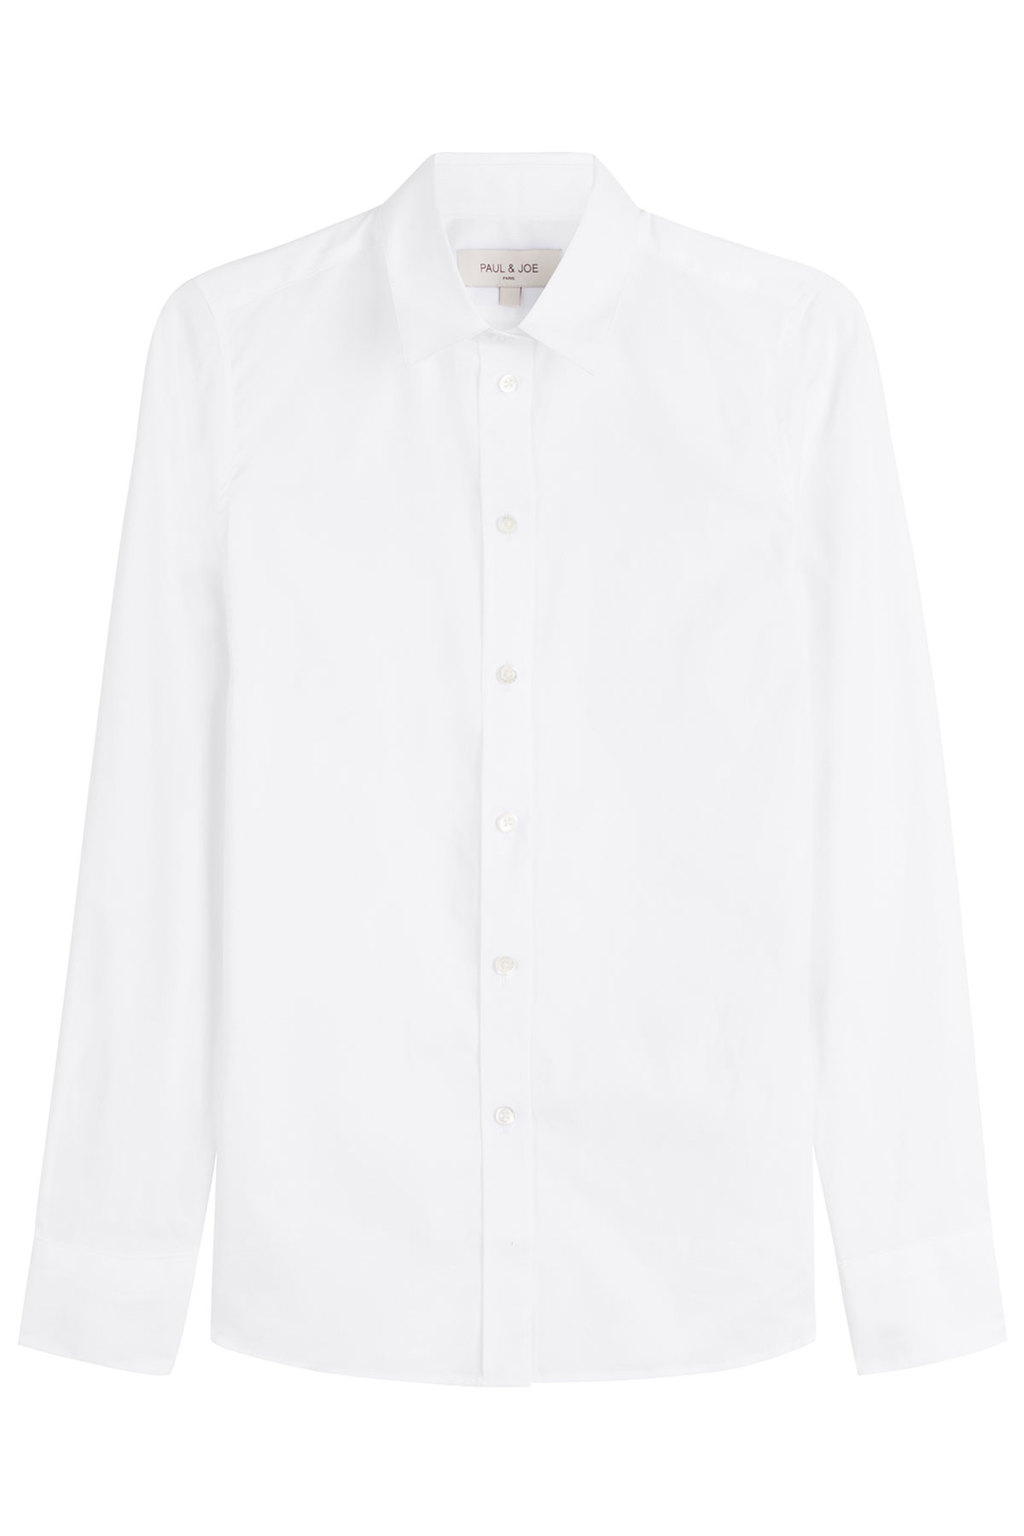 Cotton Shirt White - neckline: shirt collar/peter pan/zip with opening; pattern: plain; style: shirt; predominant colour: white; occasions: work; length: standard; fibres: cotton - 100%; fit: body skimming; sleeve length: long sleeve; sleeve style: standard; texture group: cotton feel fabrics; pattern type: fabric; season: s/s 2016; wardrobe: basic